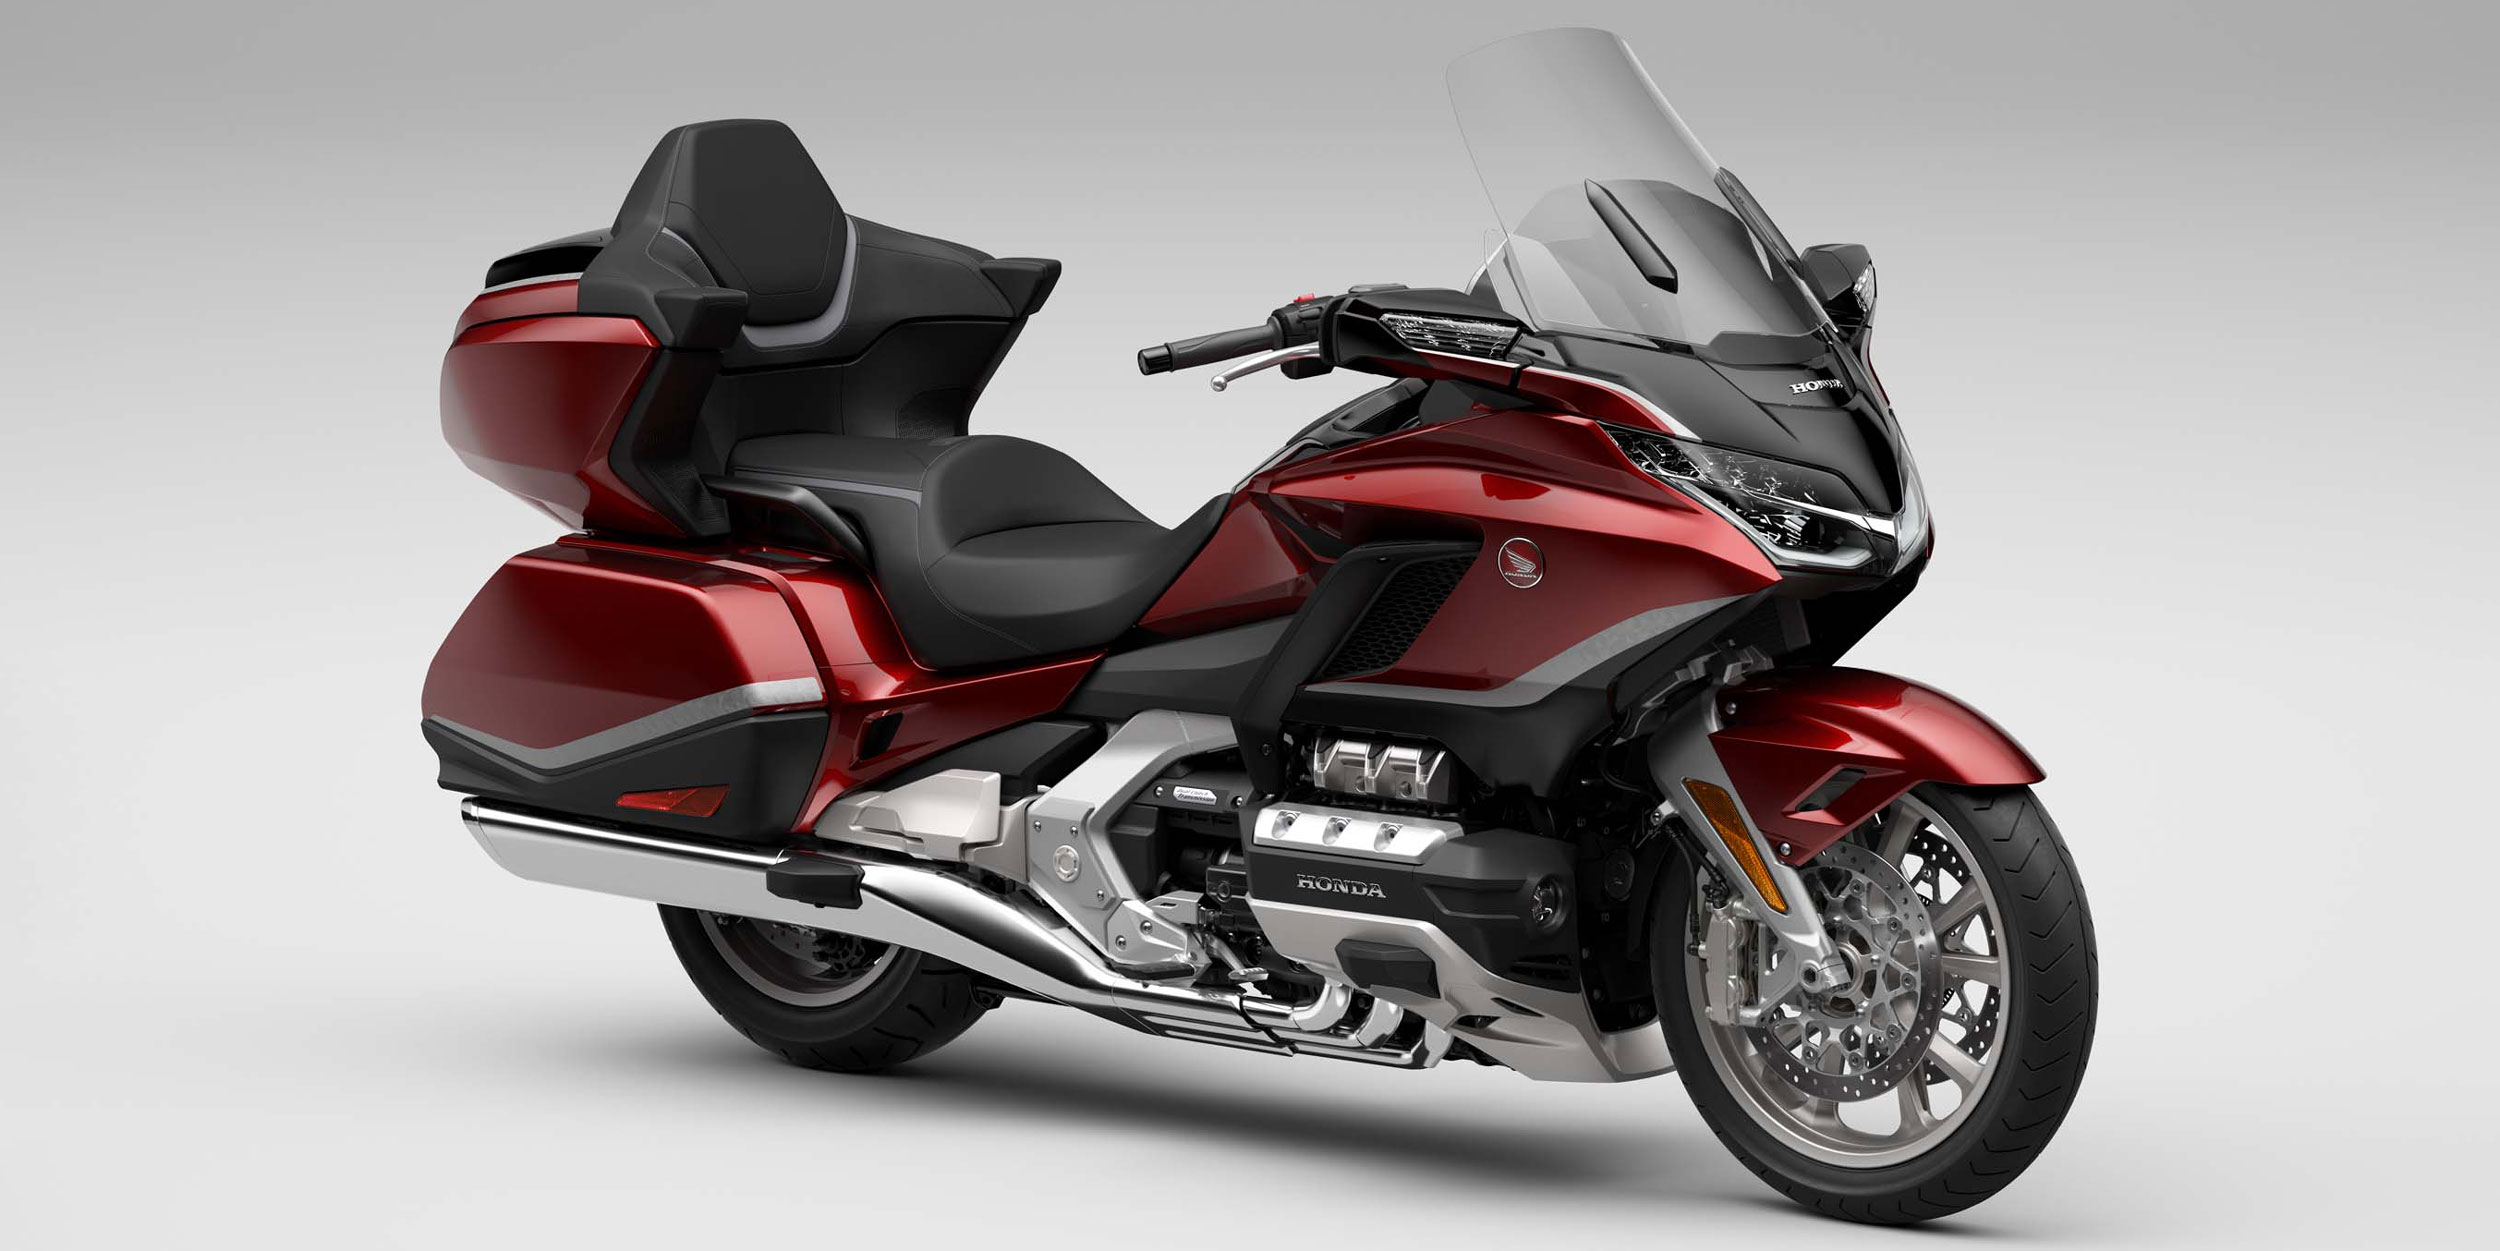 Honda Improves Touring Comfort, Convenience with 2021 Gold Wing